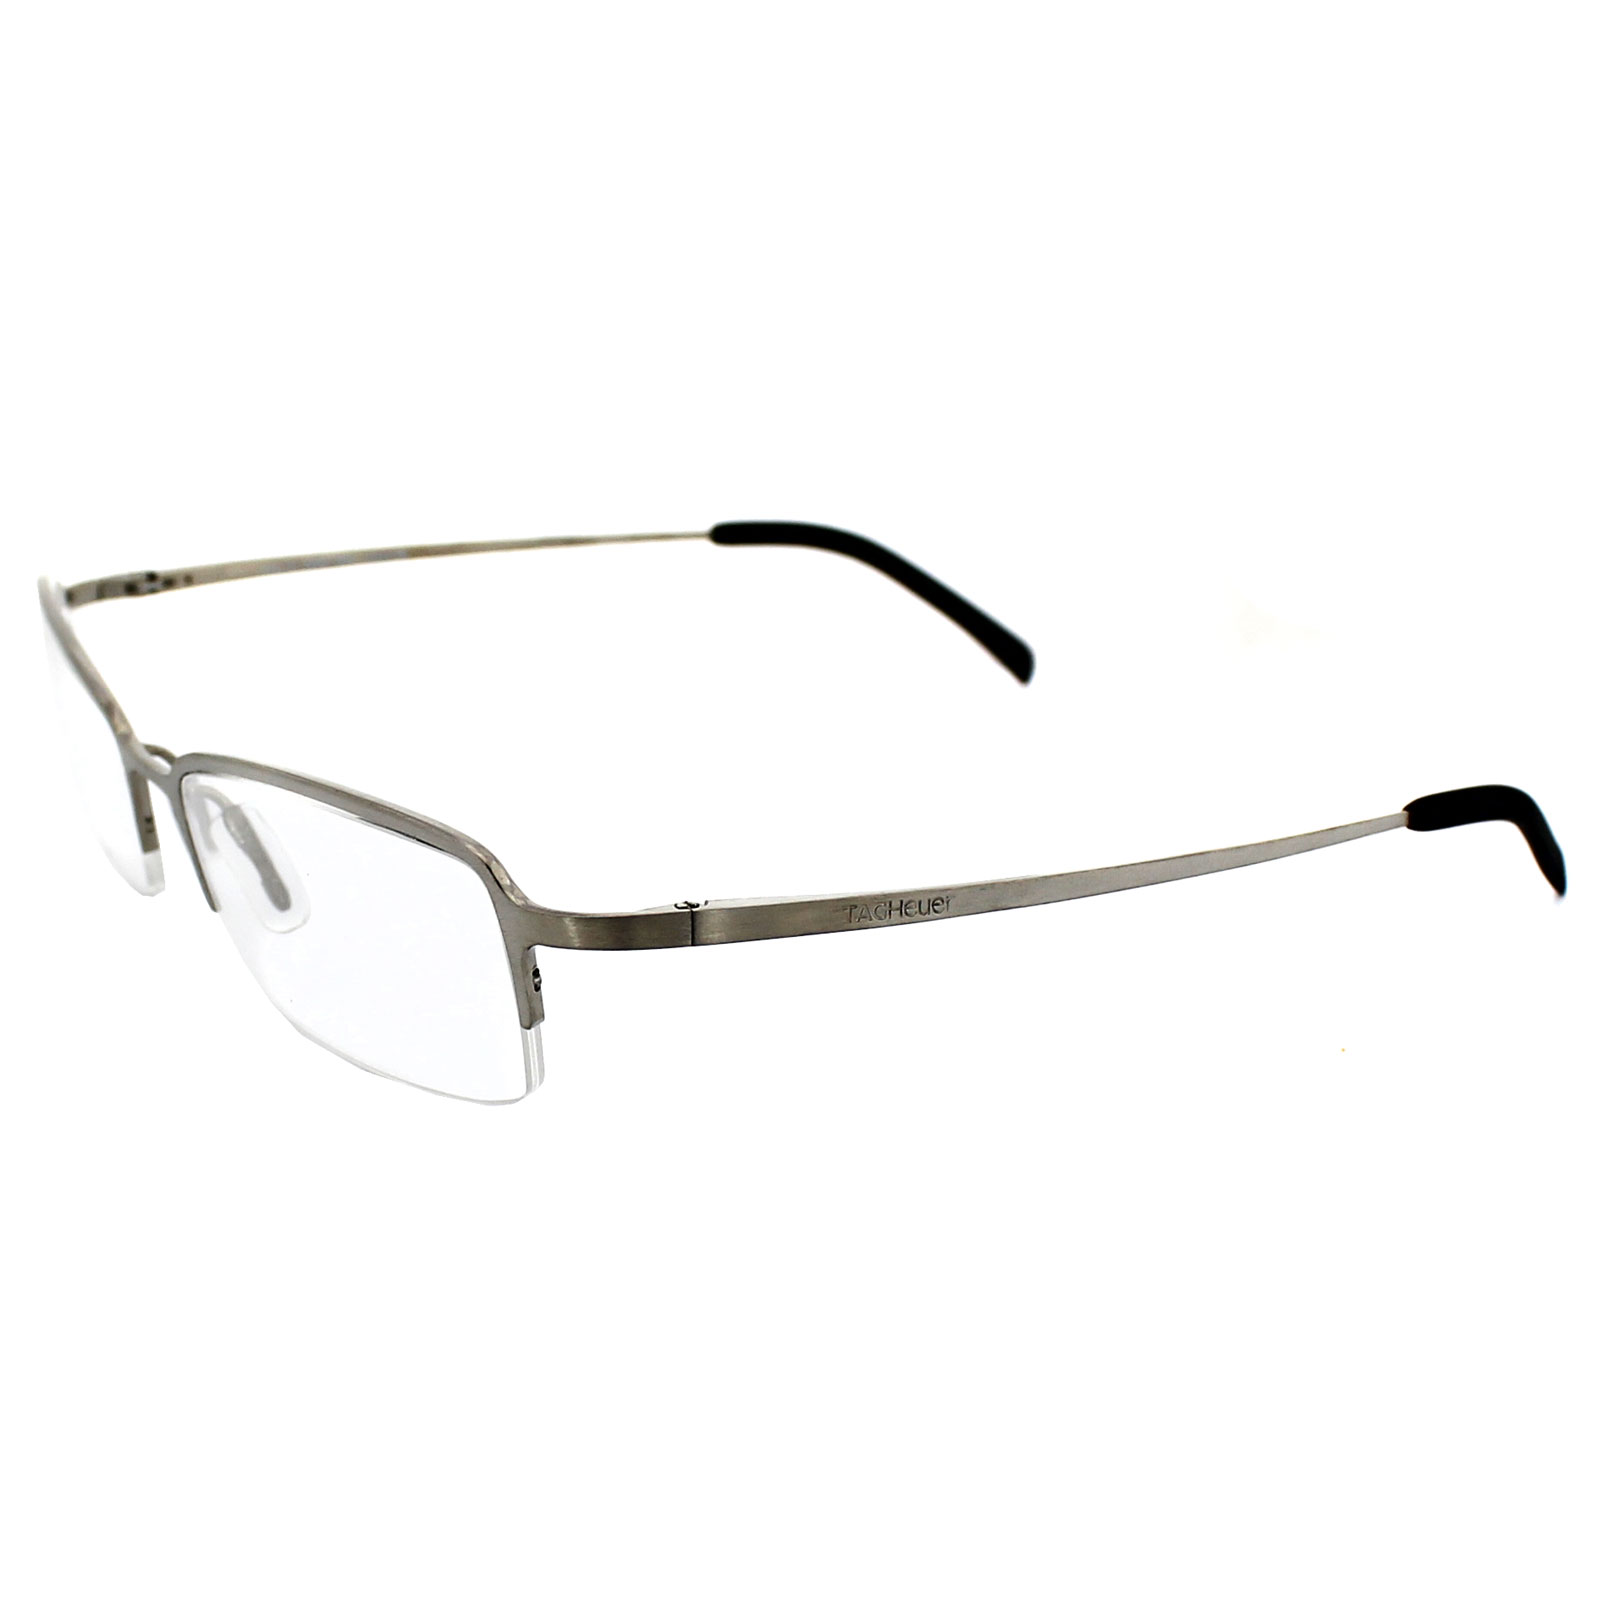 Eyeglasses Frames Tag Heuer : Cheap Tag Heuer Sport 4204 Frames - Discounted Sunglasses